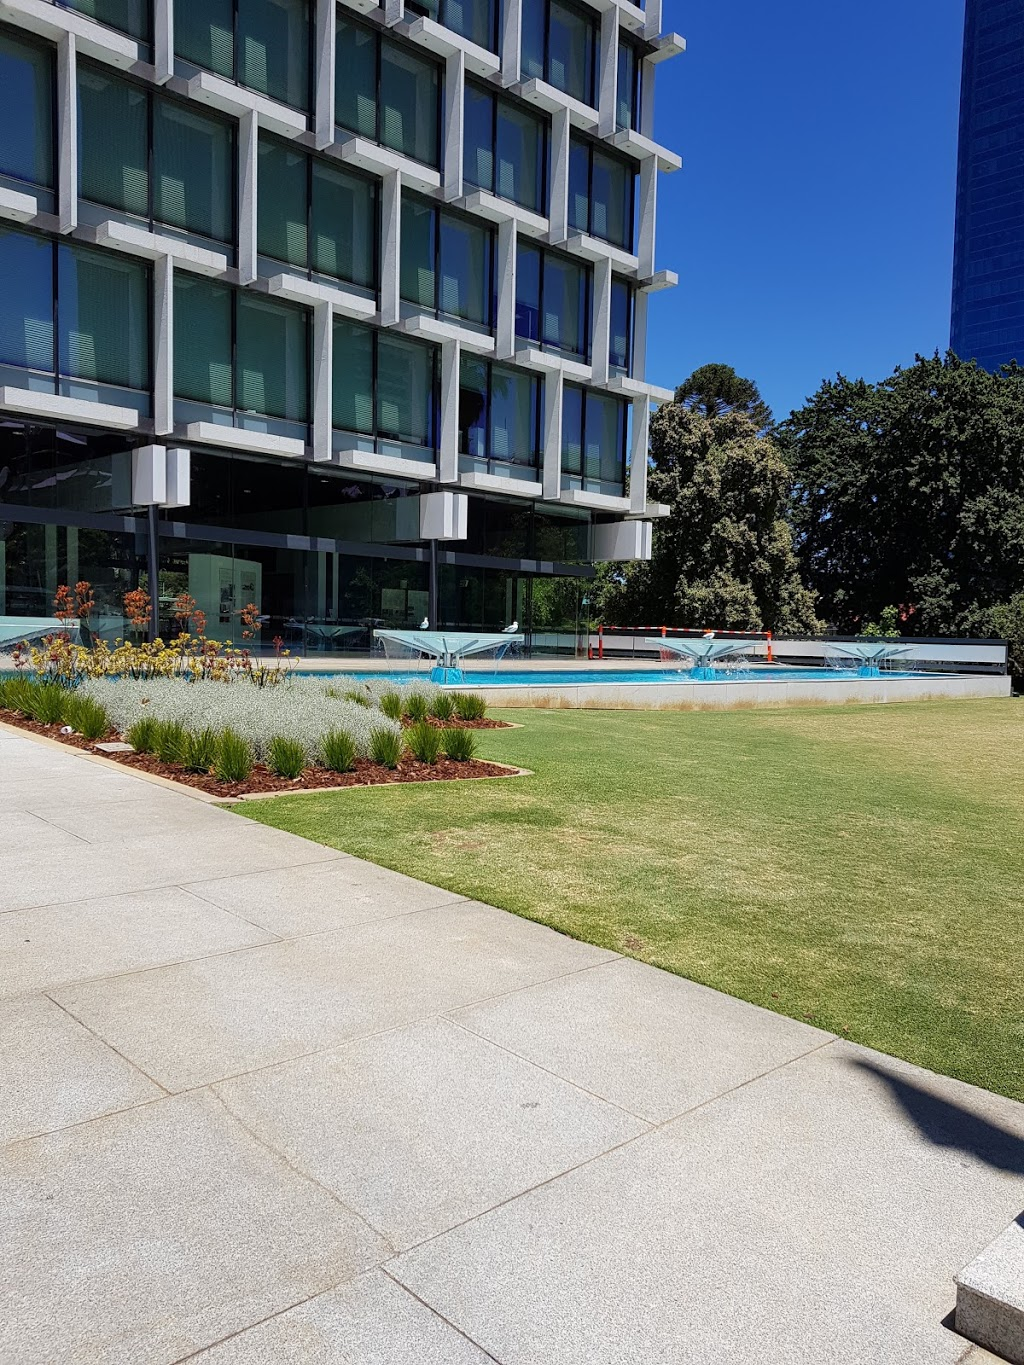 City of Perth Parking | parking | 27 St Georges Terrace, Perth WA 6000, Australia | 1300889613 OR +61 1300 889 613